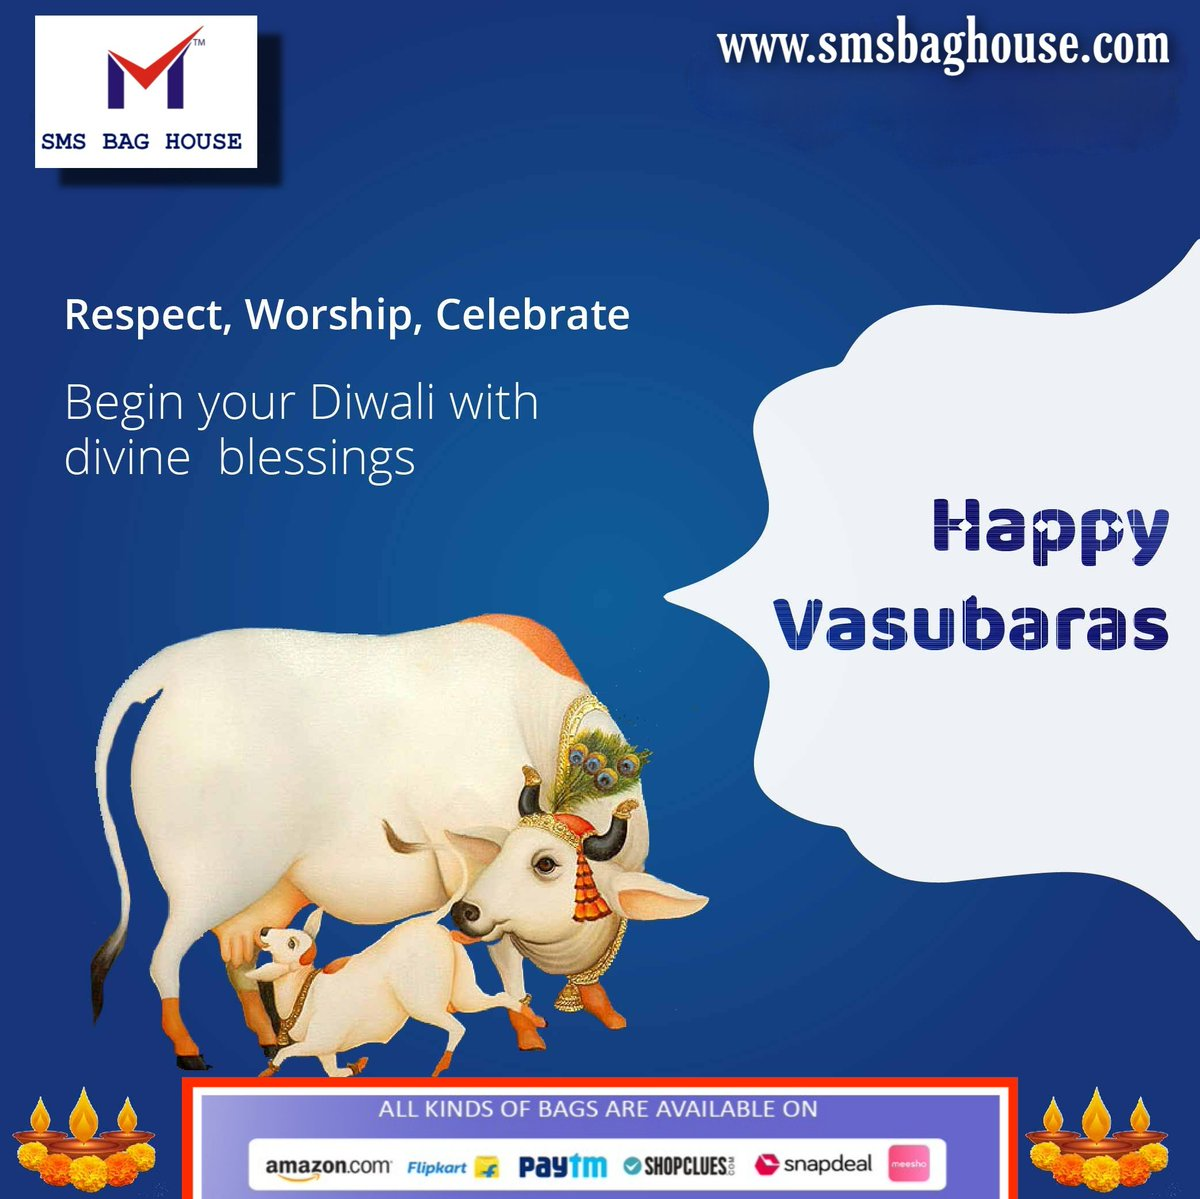 #Happy #Vasubaras to you all, celebrated on first day of #Diwali with a message of love and generosity.  . . . . . . . . . . #smsbag #smsbaghouse #MyAtMyStyle #HappyDiwali #SwagSafeTravels #TheBigBillionDays #DiwaliSale #onlinesale #Amazon #pubgbag #flipkartipkartbigbilliondays